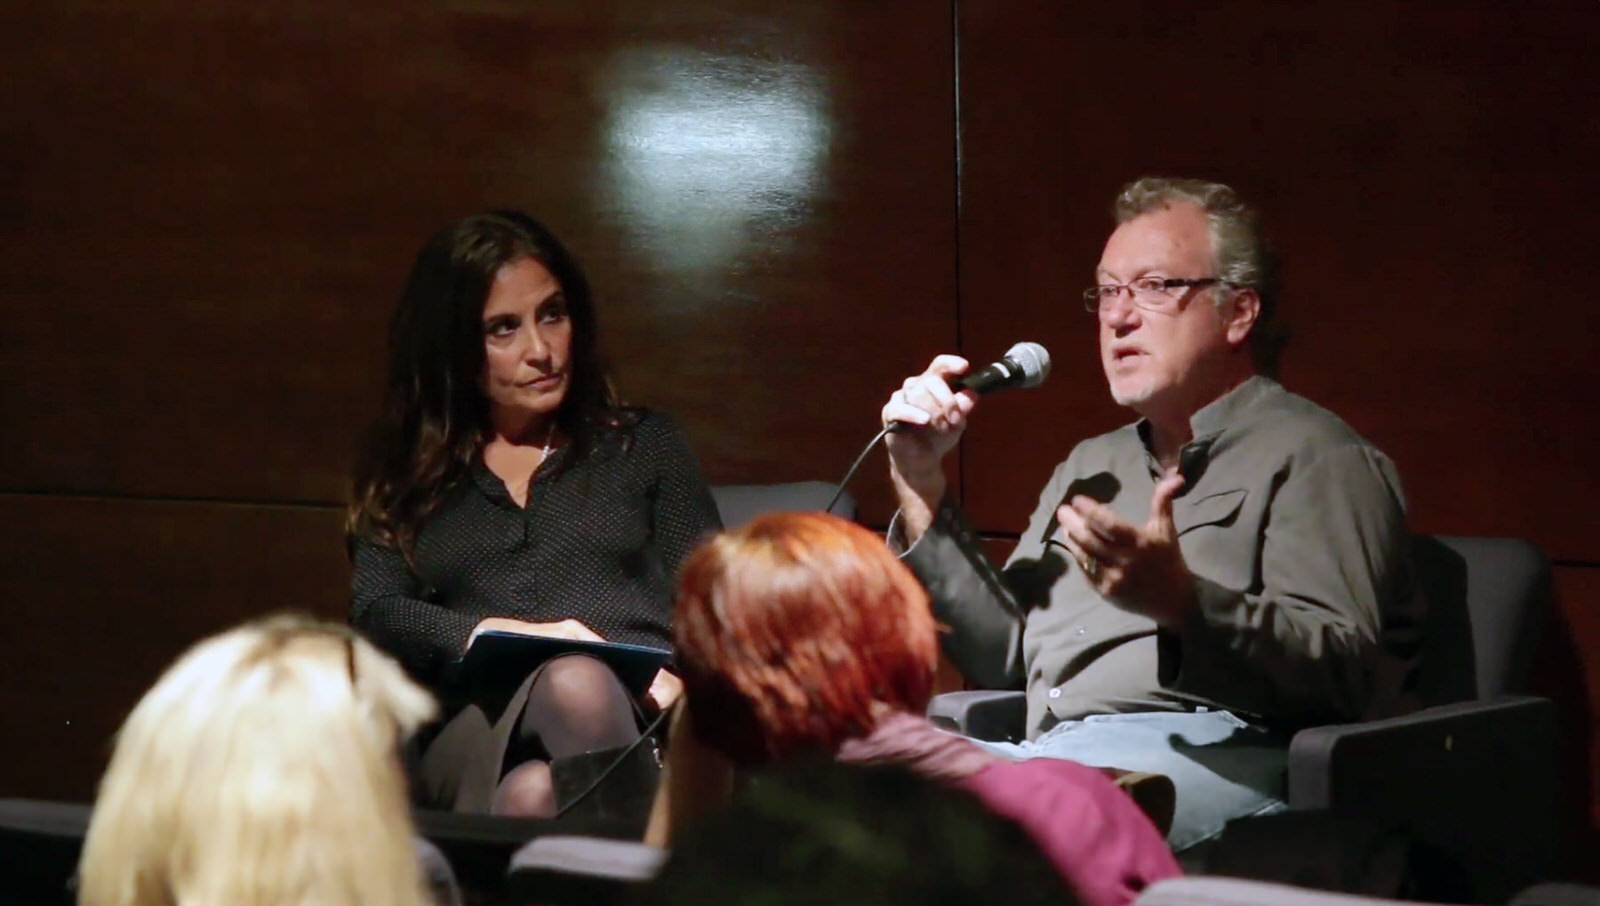 image from VIDEO - Storytelling Cuba: Jon Lee Anderson in Conversation